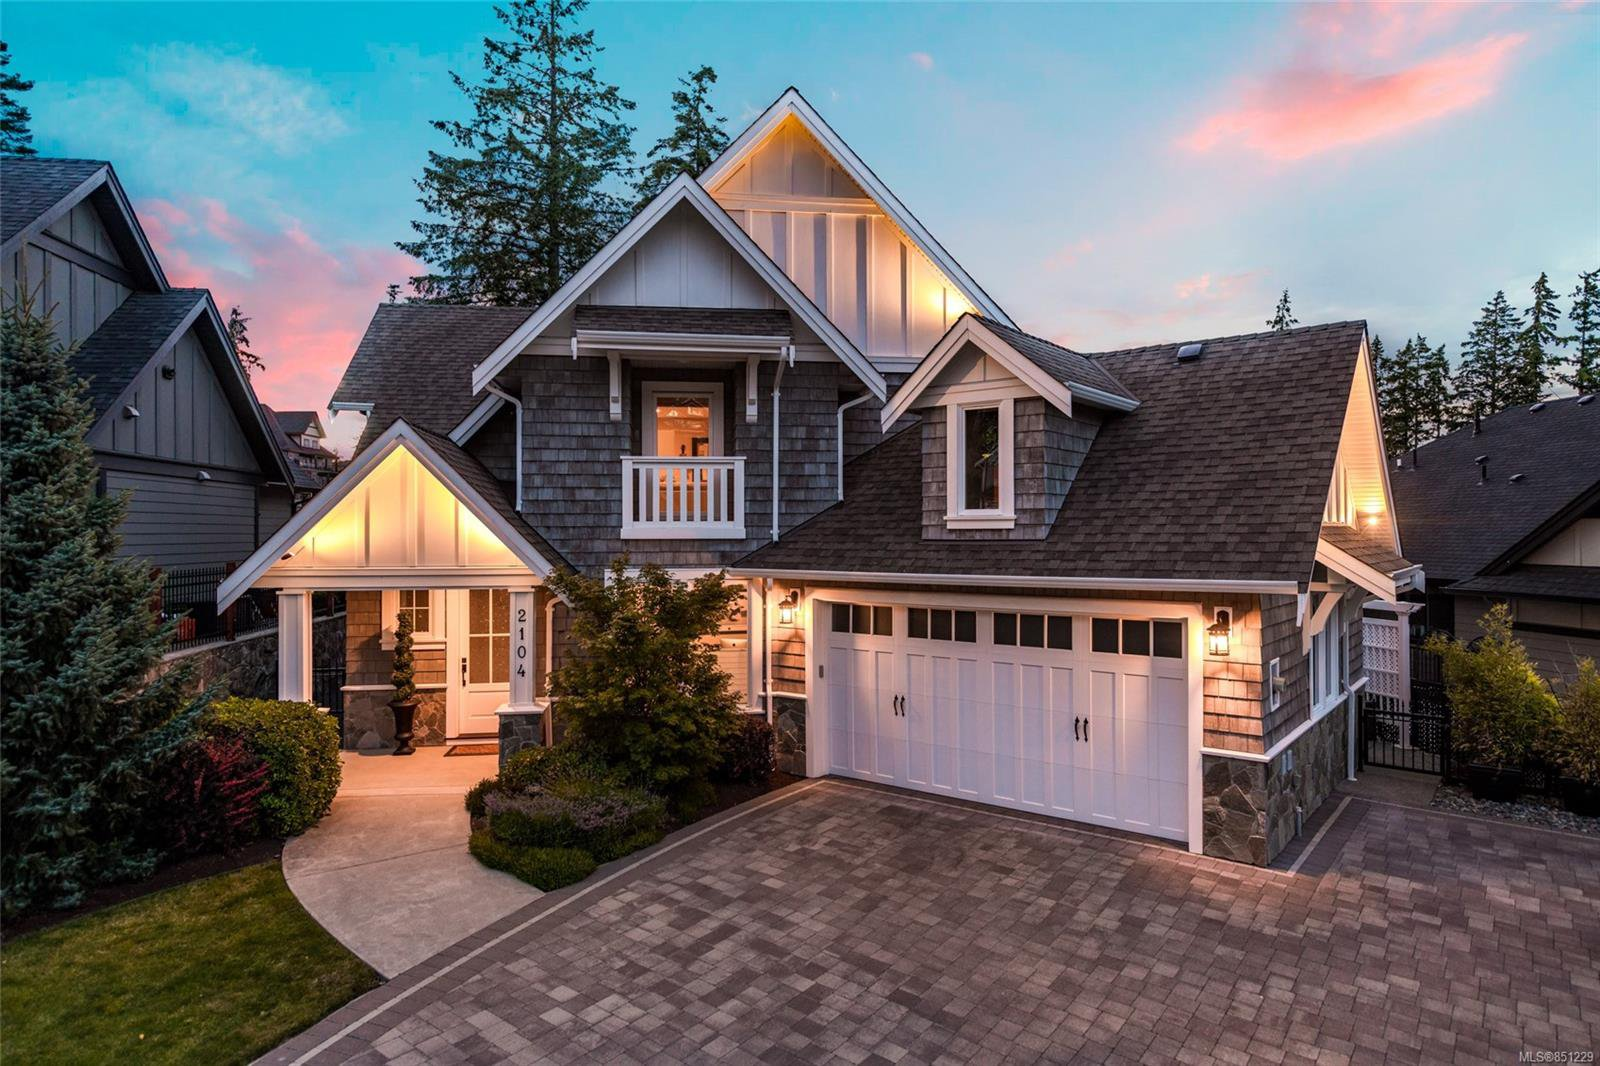 Main Photo: 2104 Champions Way in : La Bear Mountain Single Family Detached for sale (Langford)  : MLS®# 851229